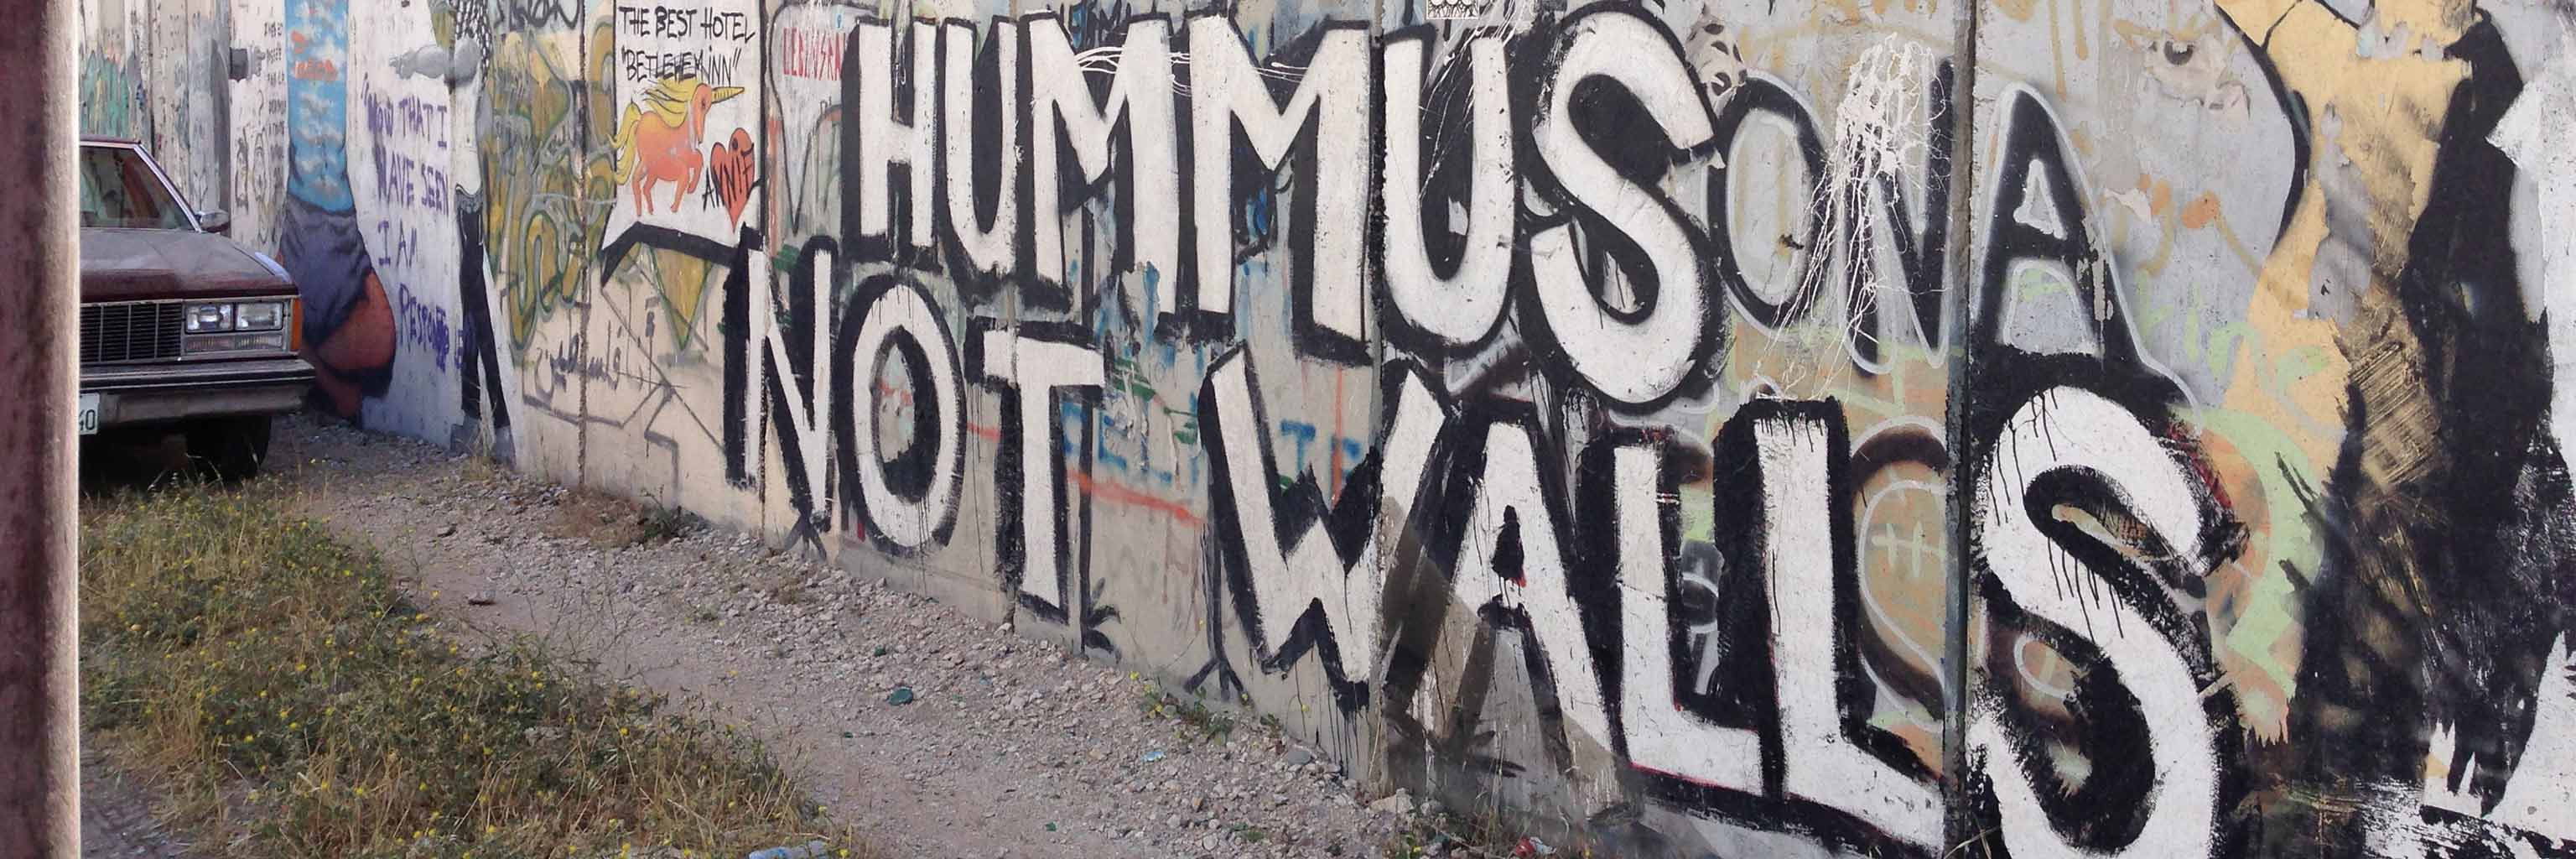 Make hummus not walls; A graffiti-covered stone wall, with a car parked against